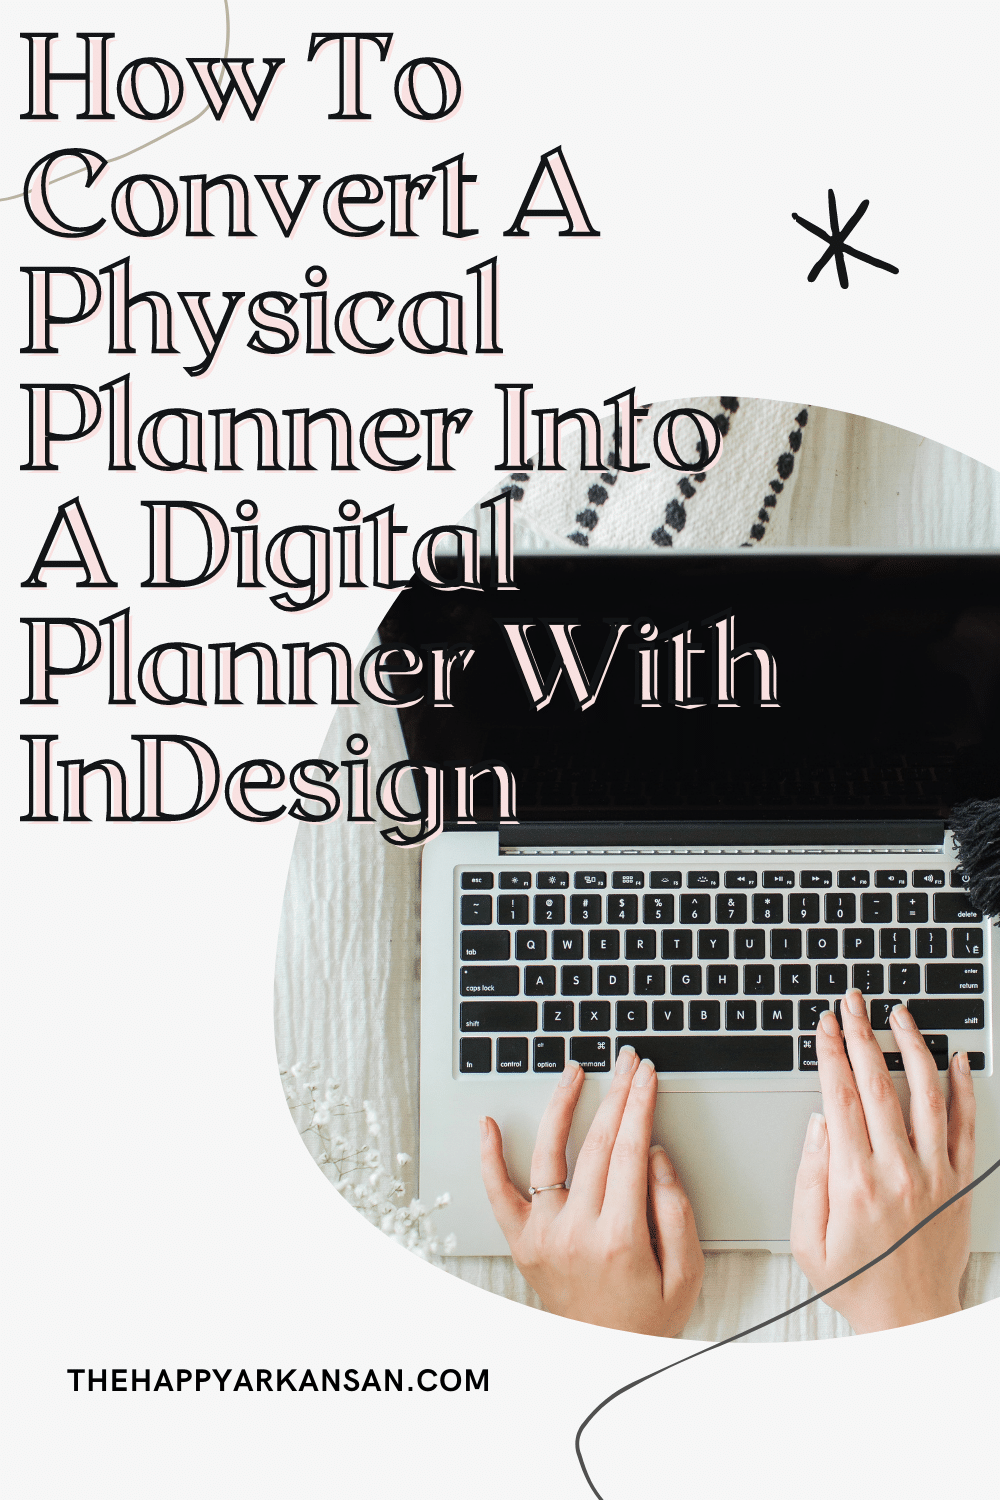 indesign-digital-planner-tutorial